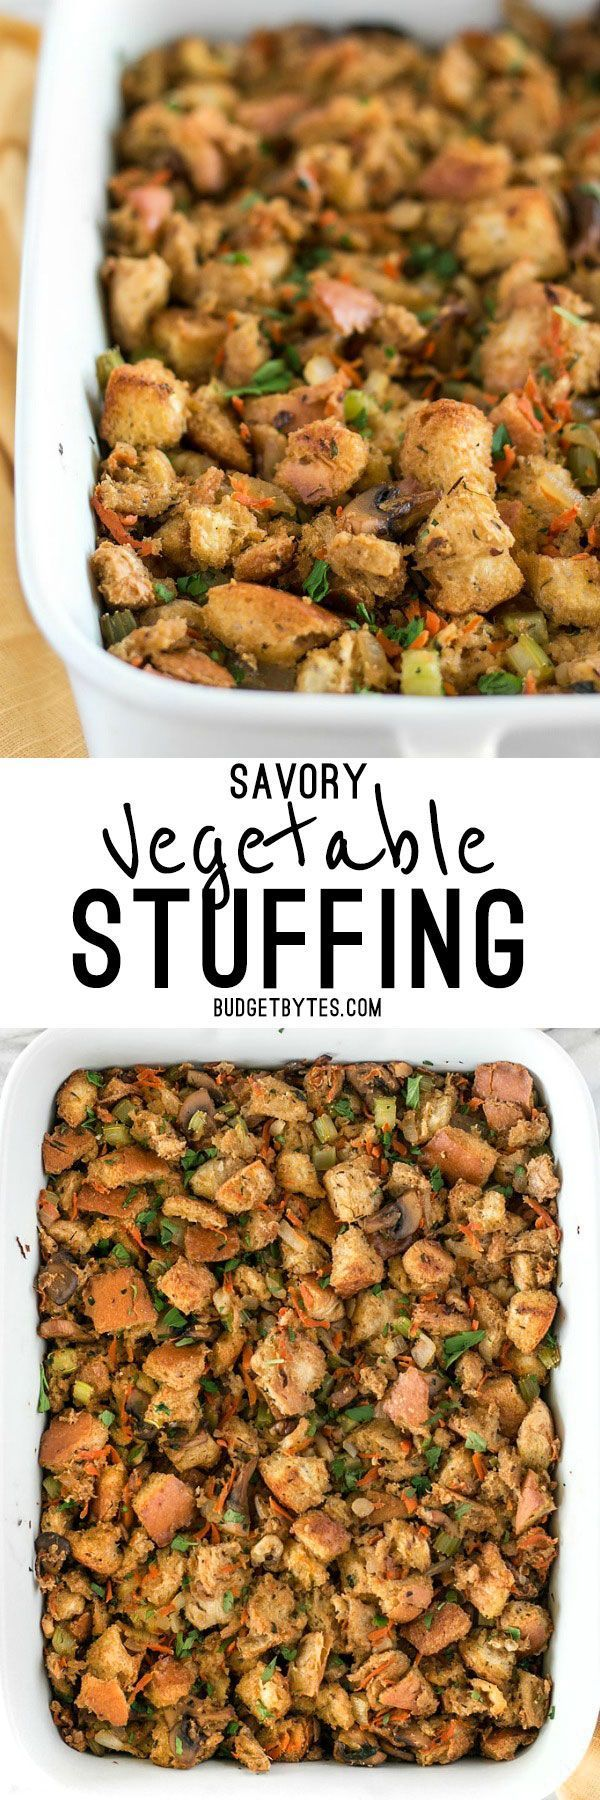 This Savory Vegetable Stuffing is full of so much color, texture, and flavor that it will be loved by meat-eaters and vegetarians alike. @budgetbytes